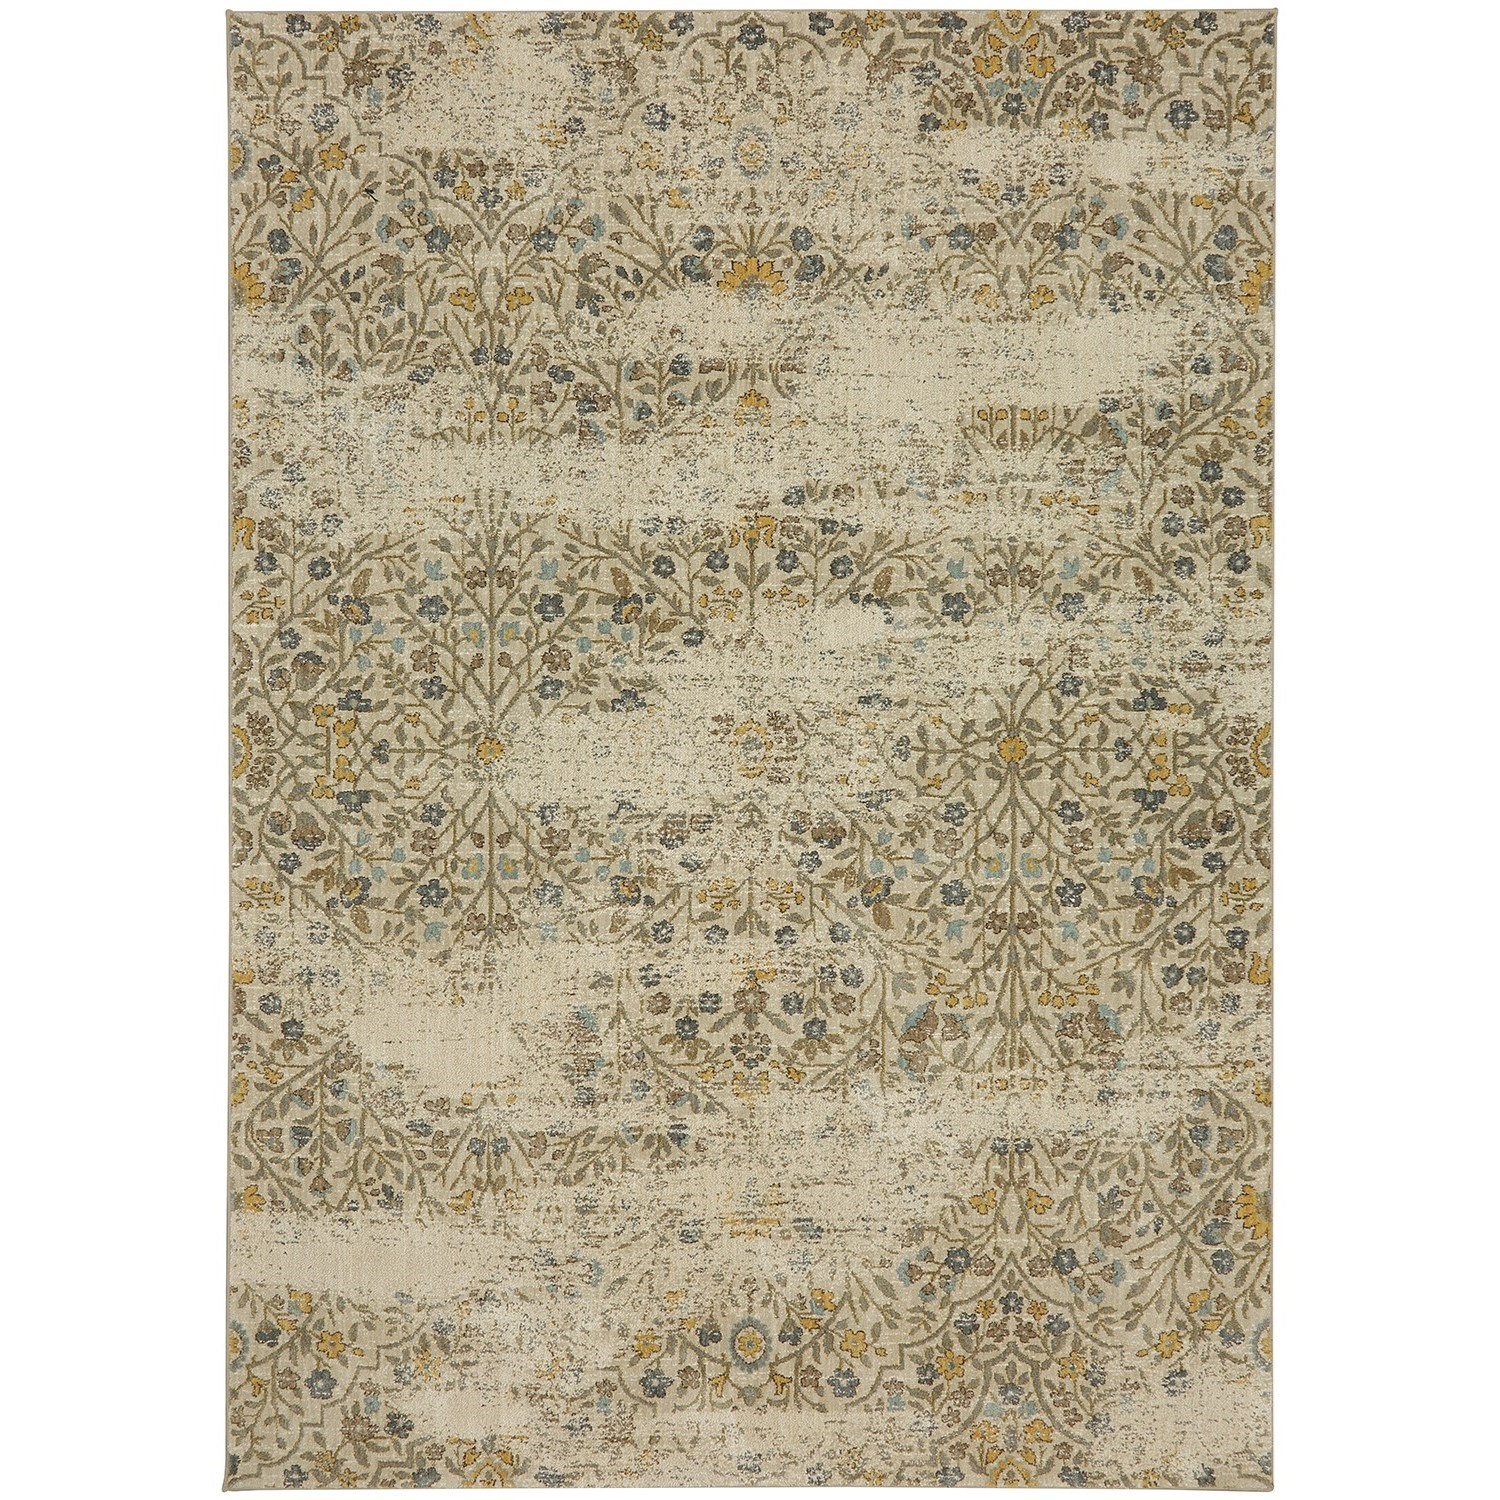 Touchstone 8'x11' Rectangle Floral Area Rug by Karastan Rugs at Darvin Furniture